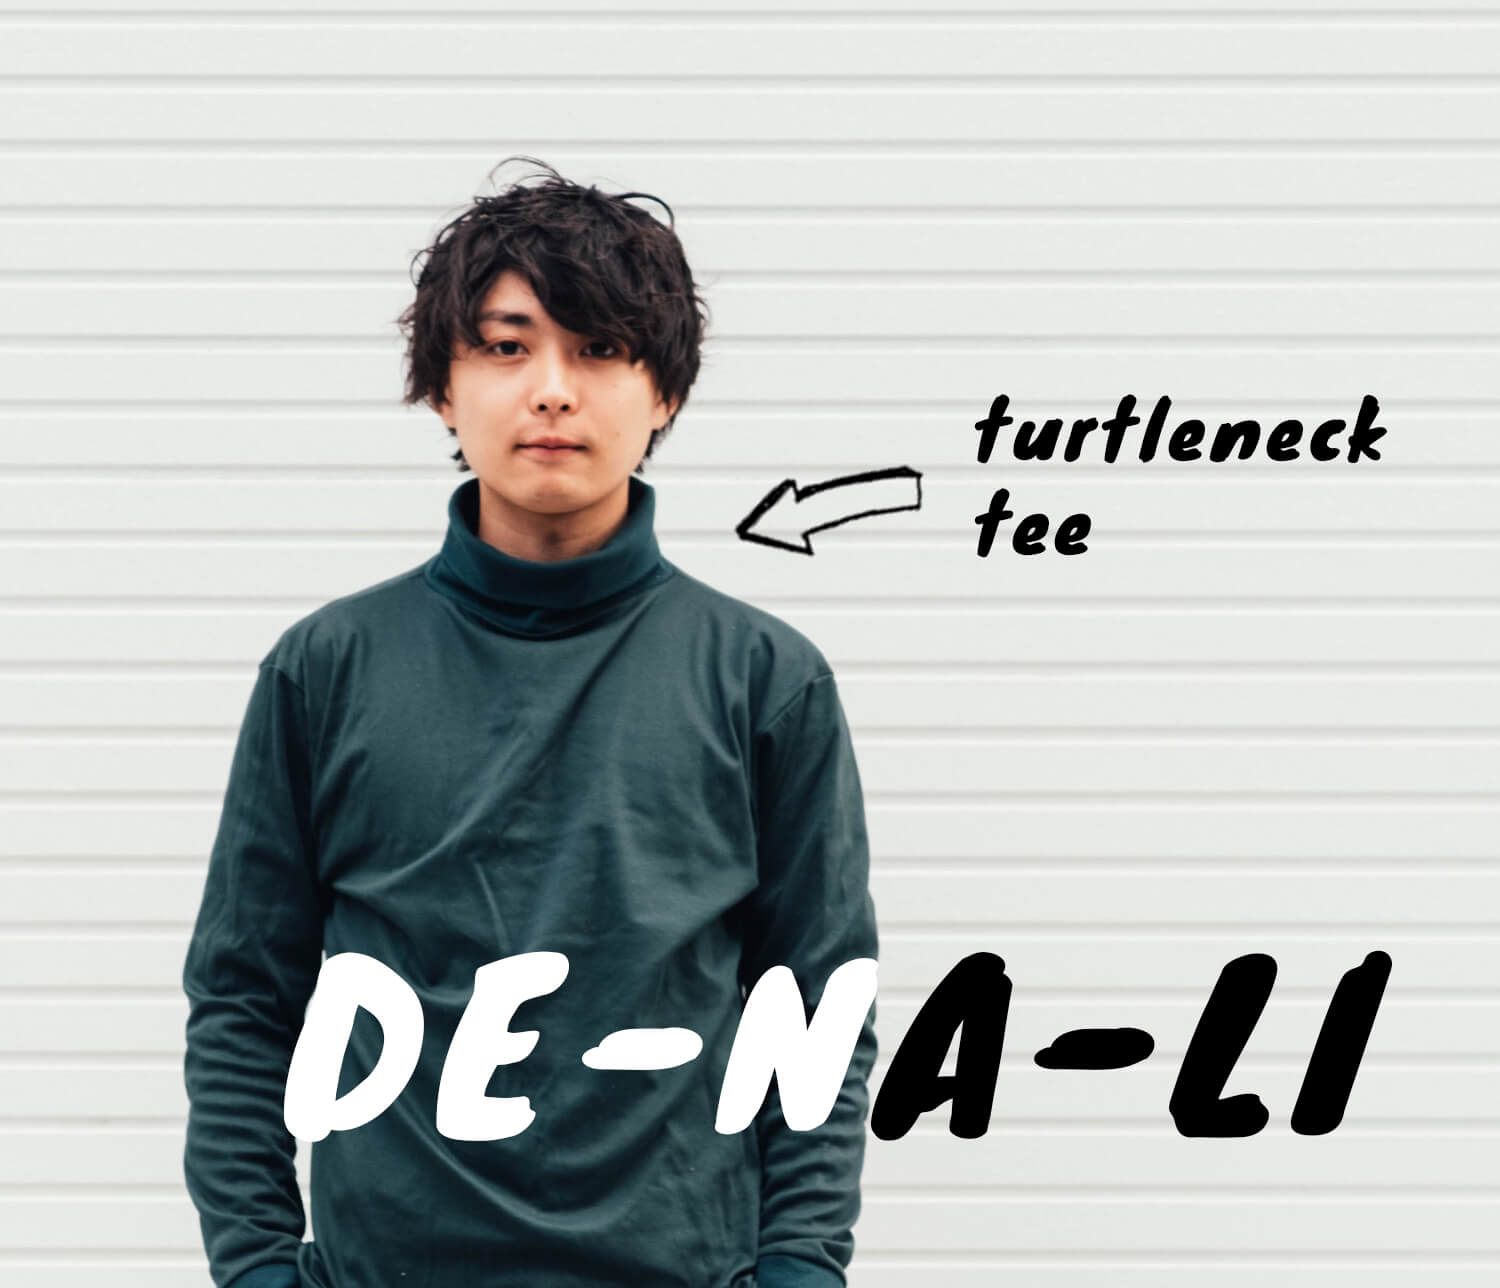 Denali turtleneck 0009のコピー